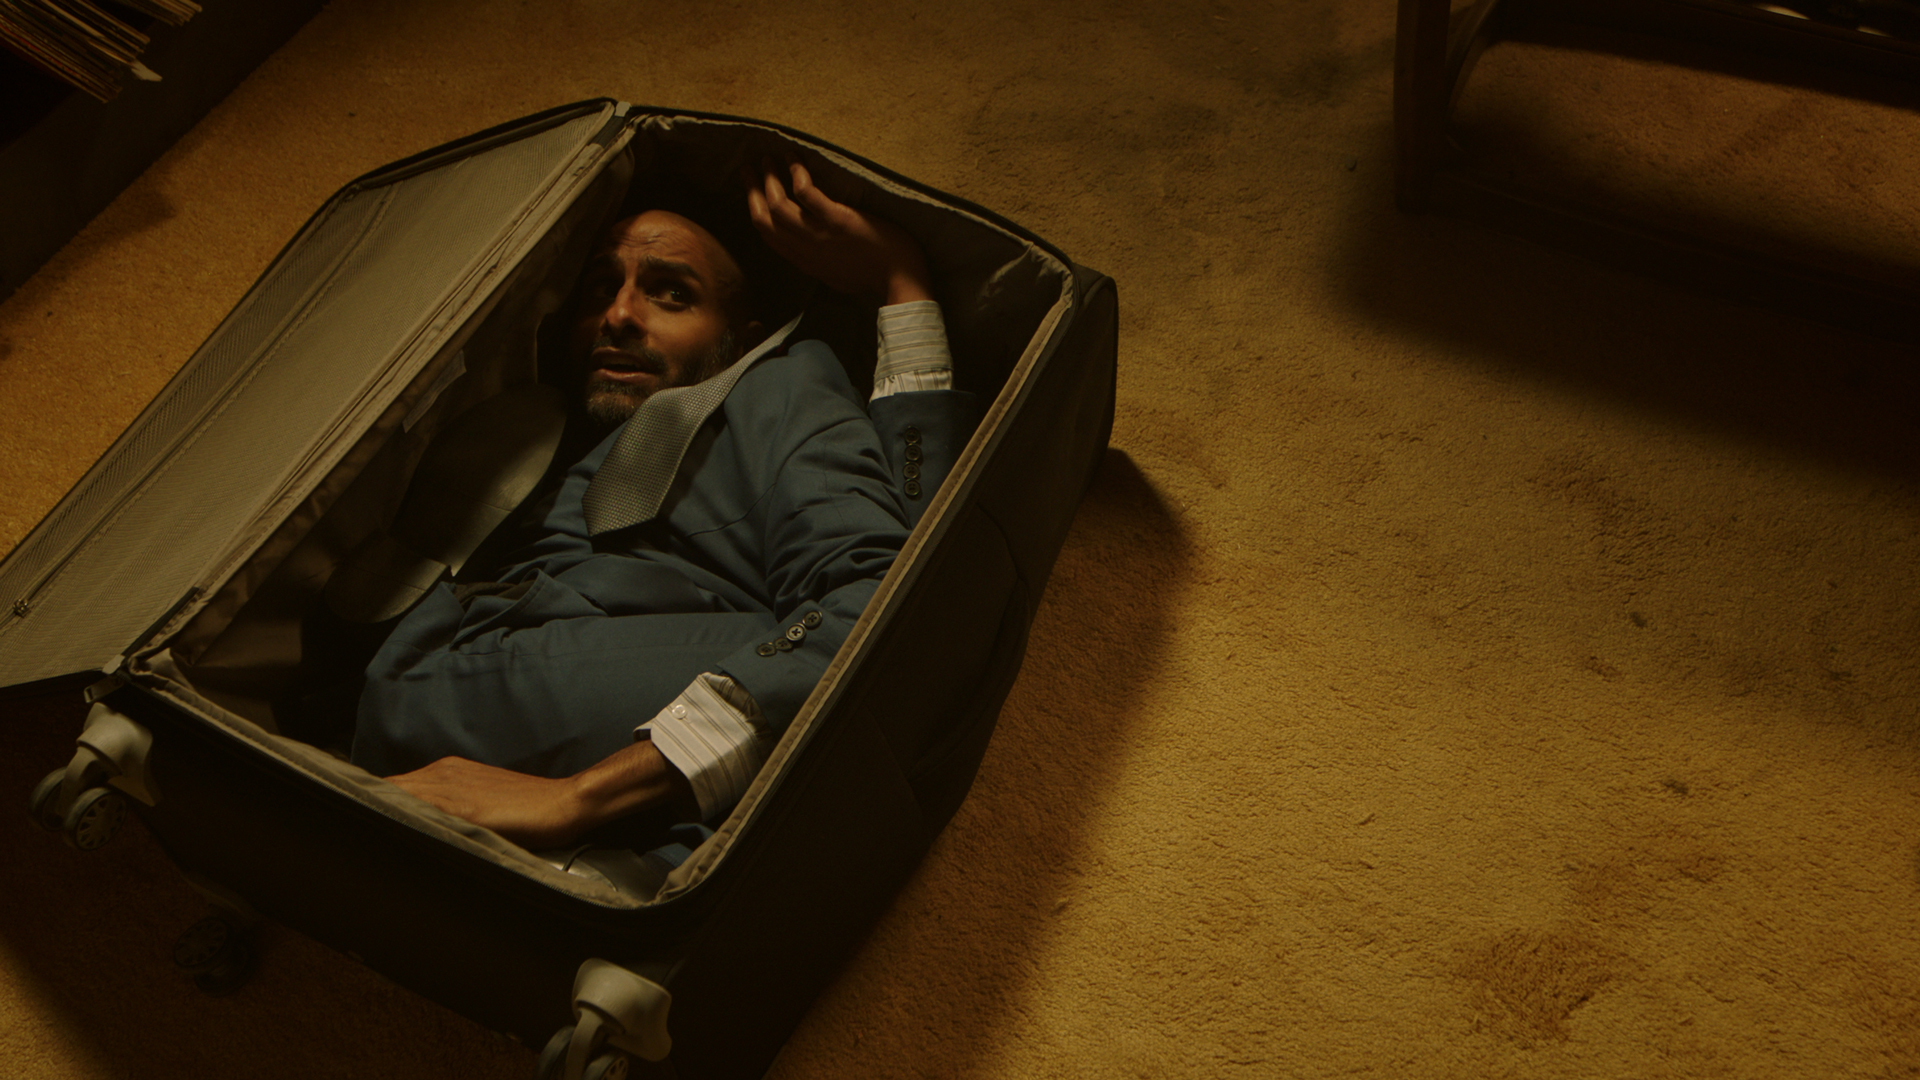 The Man in the Suitcase Creepshow